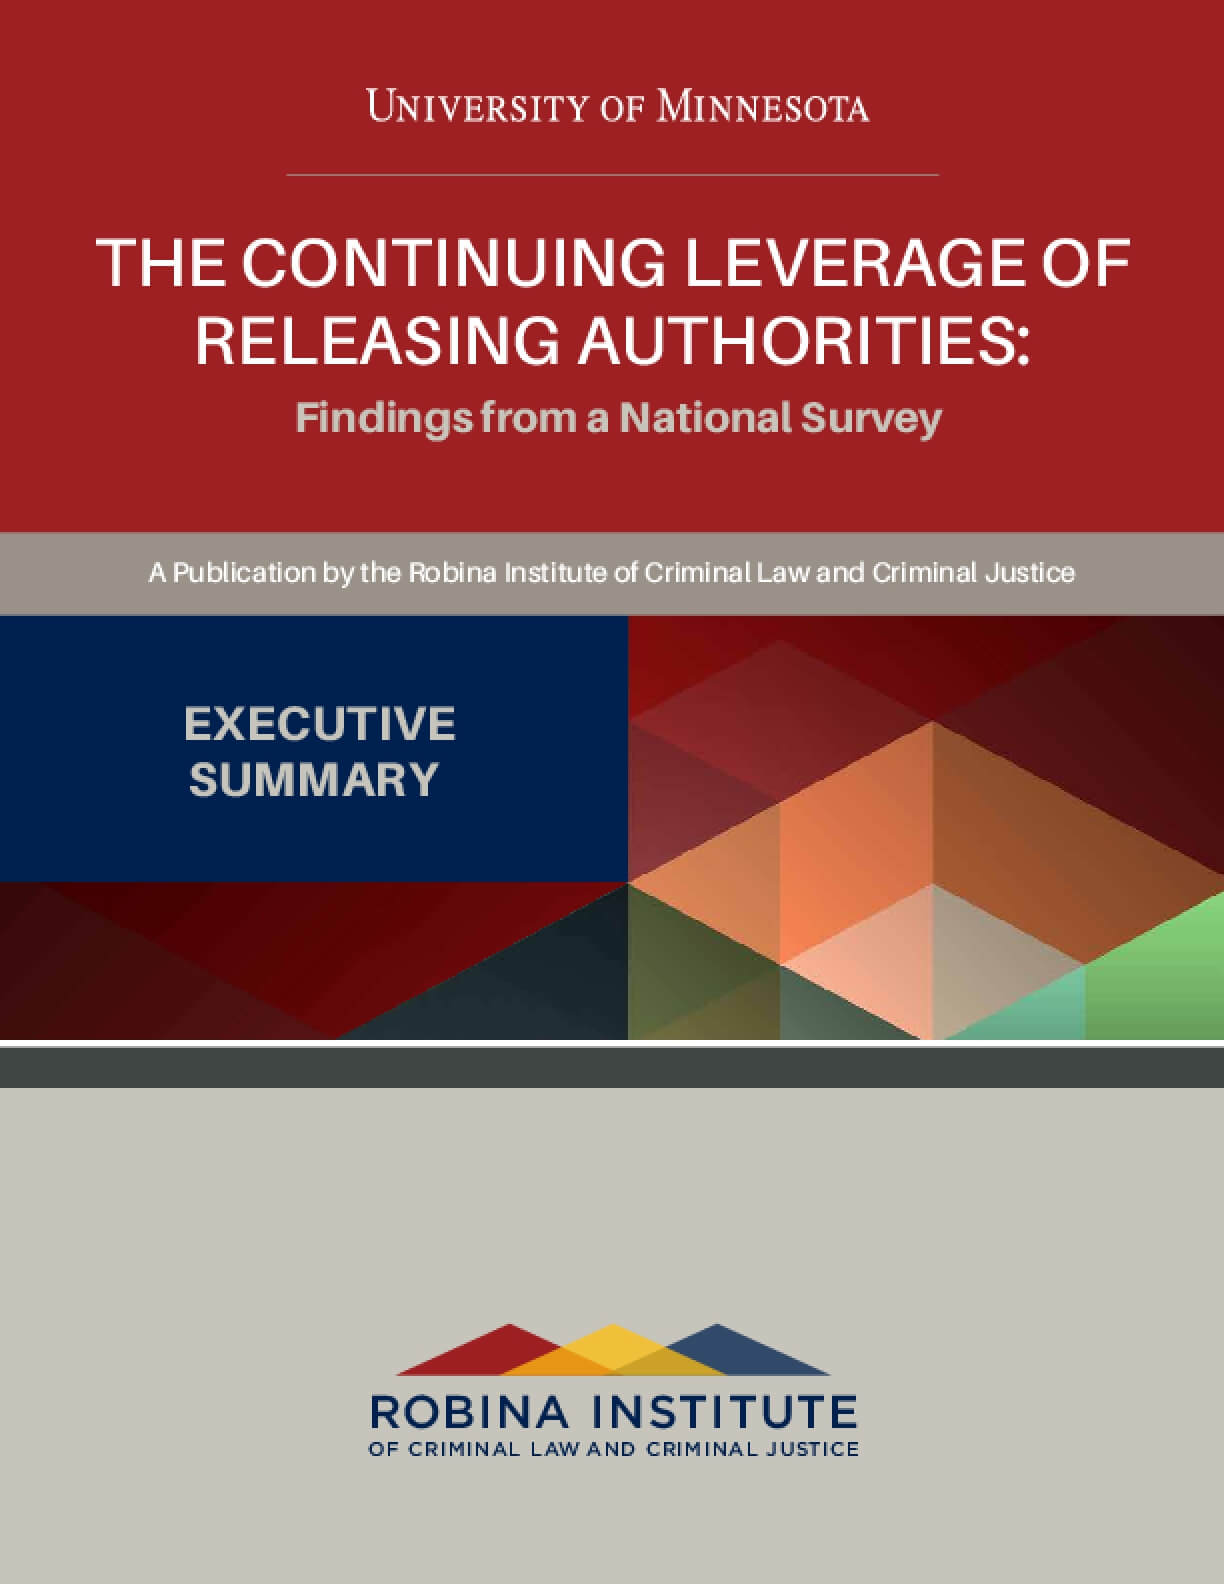 The Continuing Leverage of Releasing Authorities: Findings from a National Survey, Executive Summary